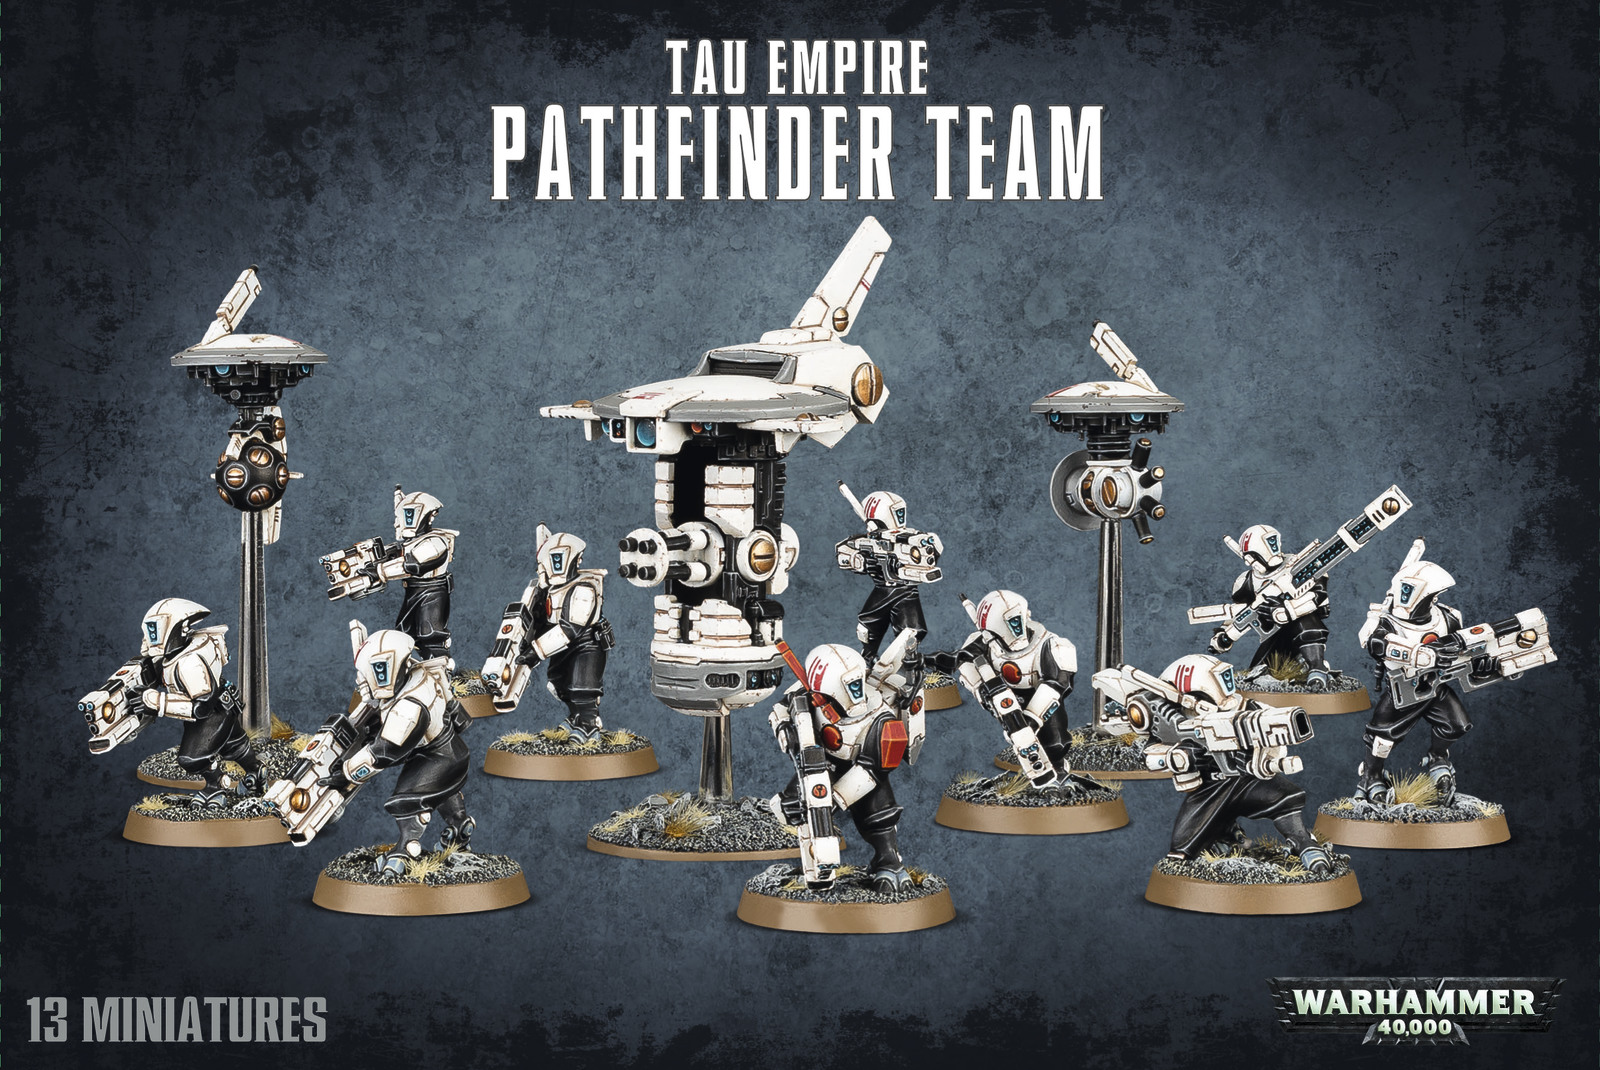 Warhammer 40,000 Tau Empire - Pathfinder Team image